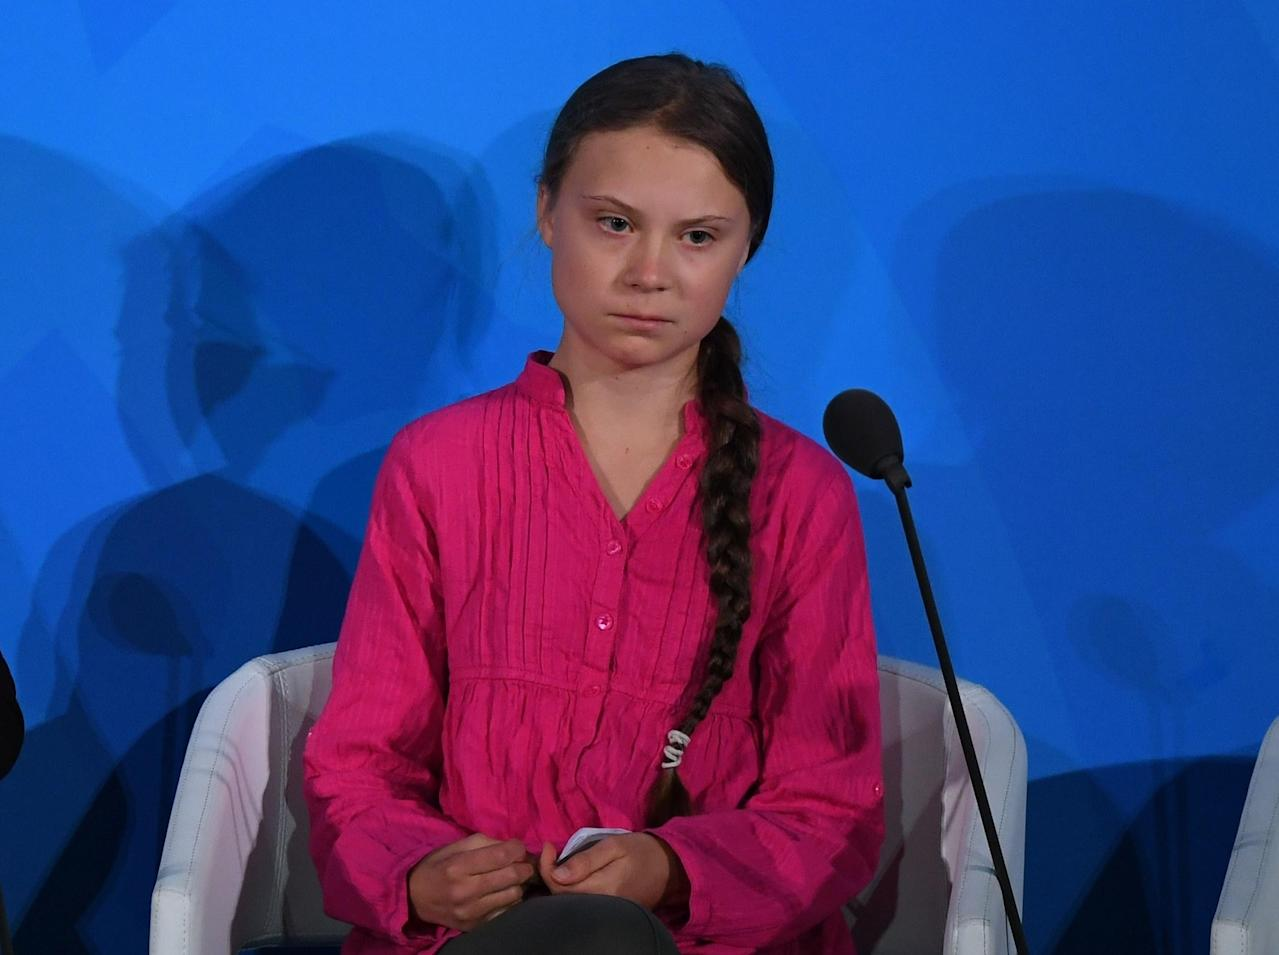 Greta Thunberg's UN Speech Is Bringing Out the Worst in ...